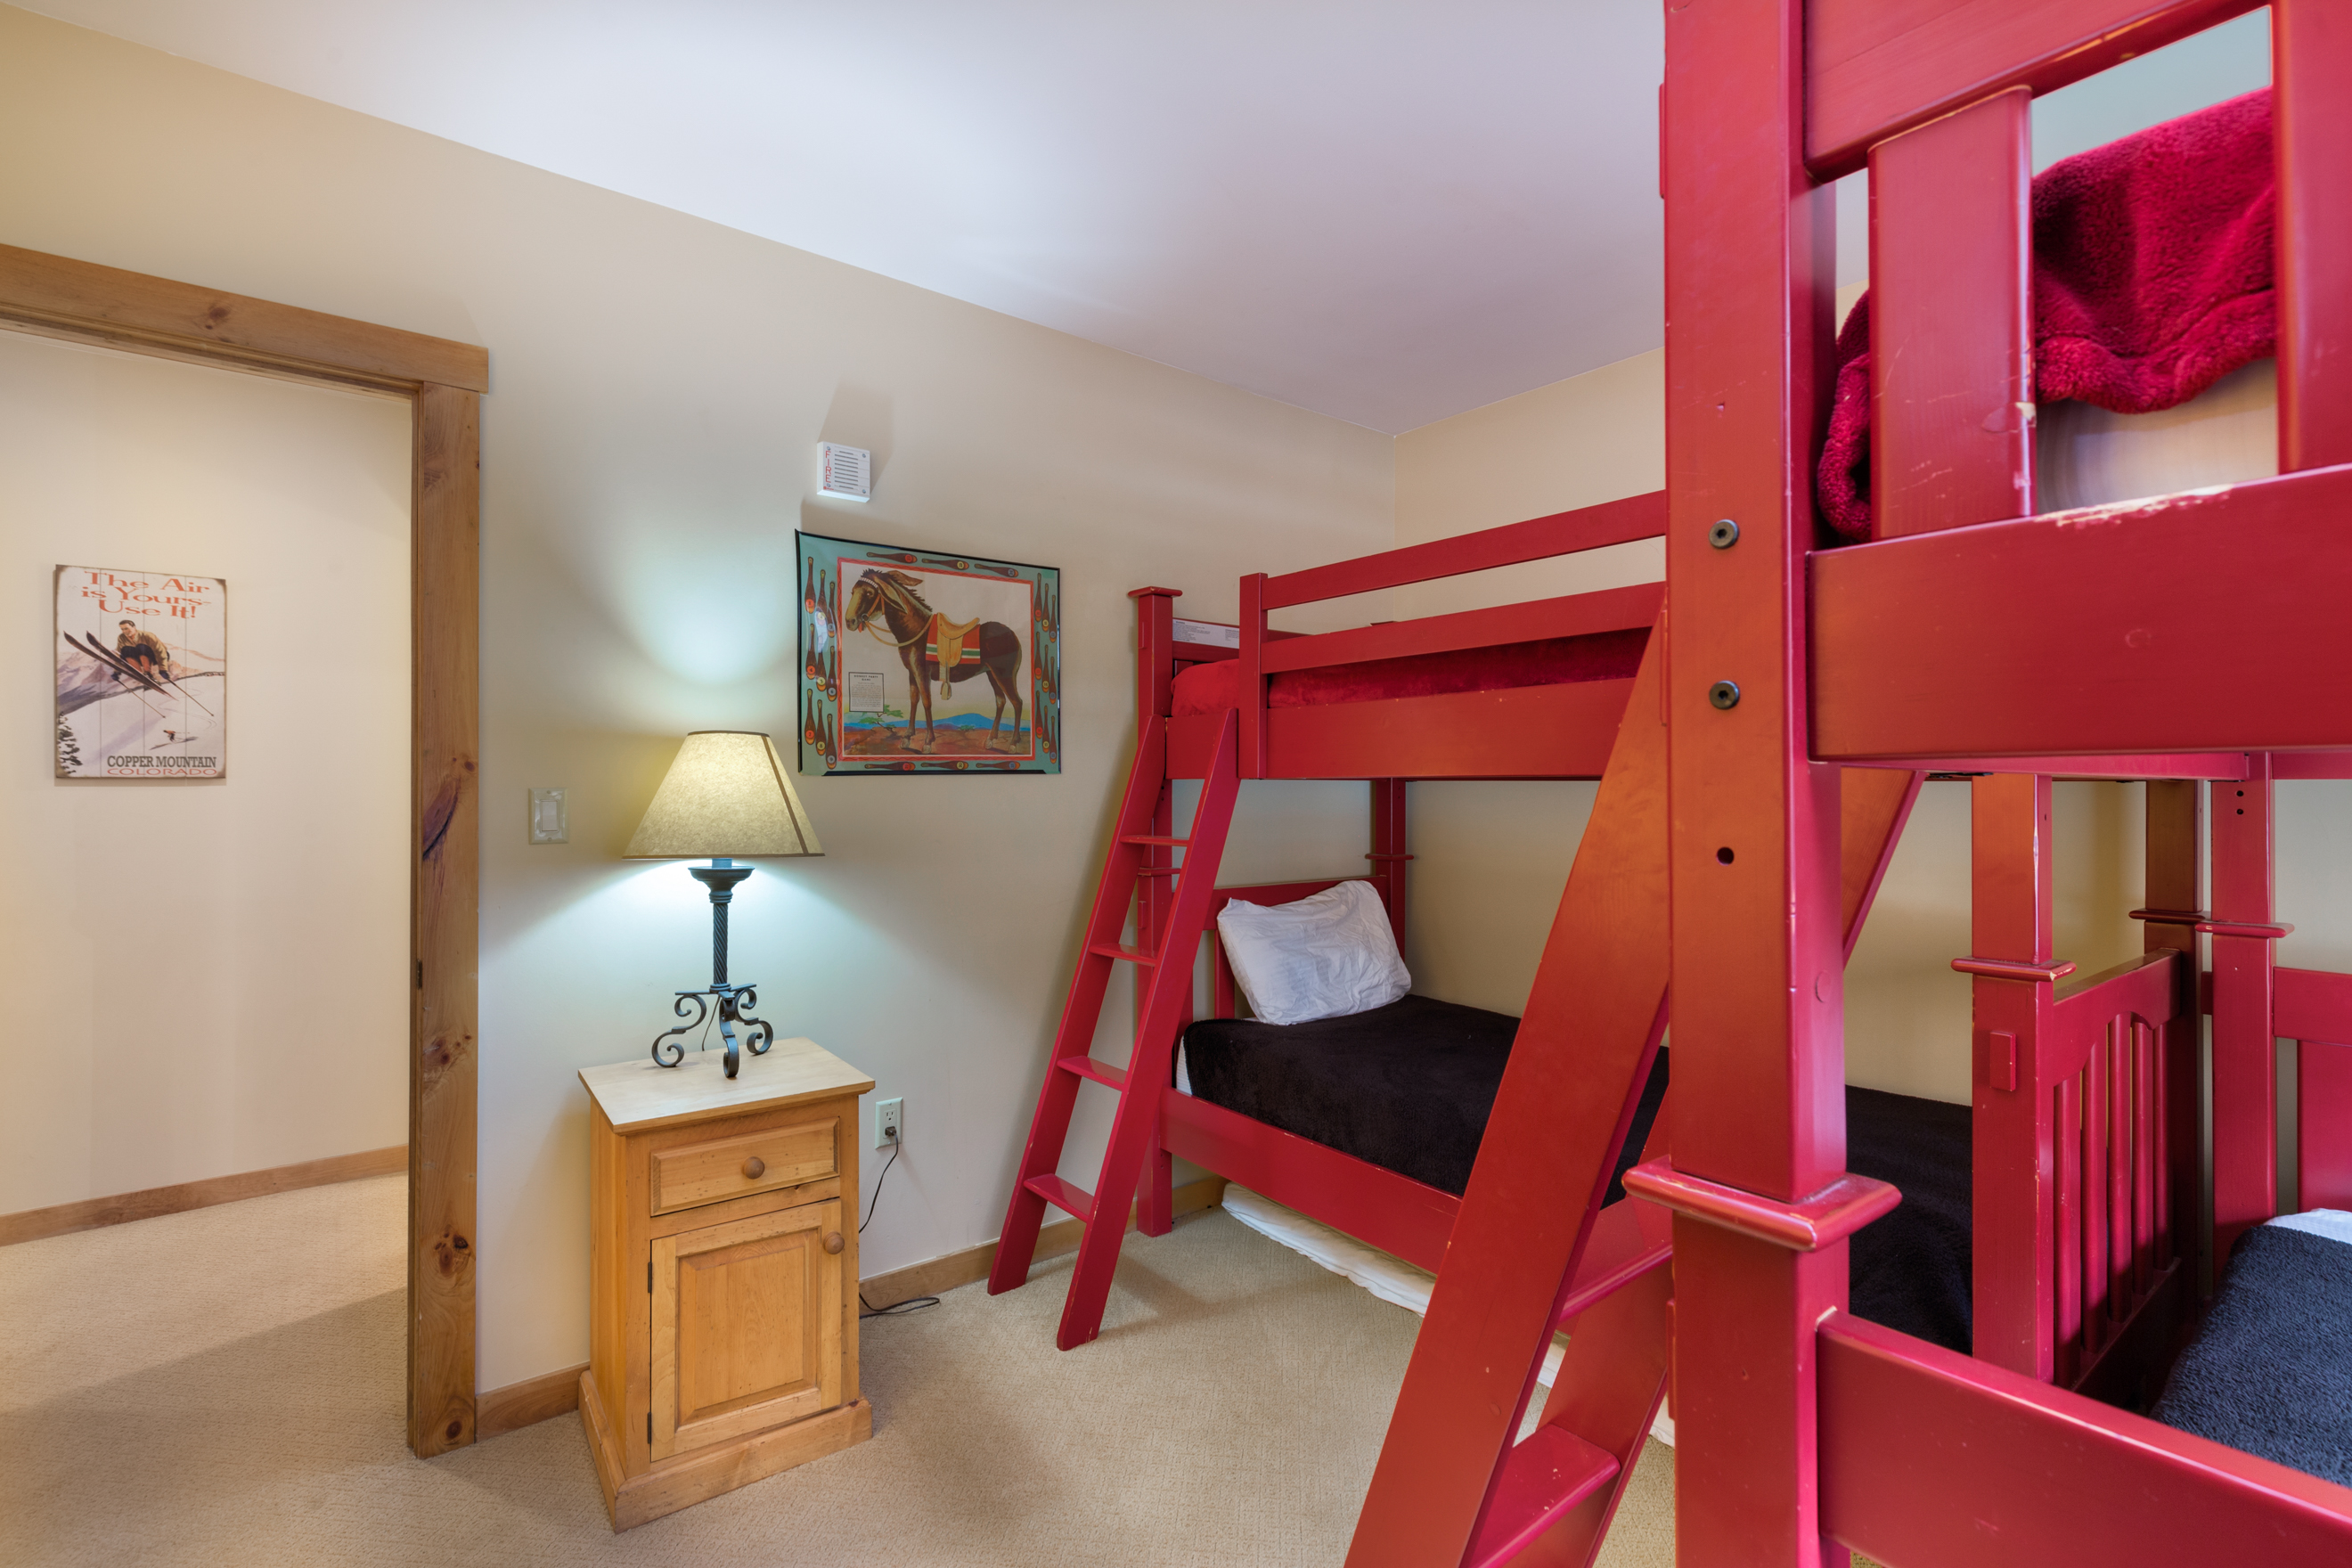 The guest bedroom sleeps four with two bunk beds.